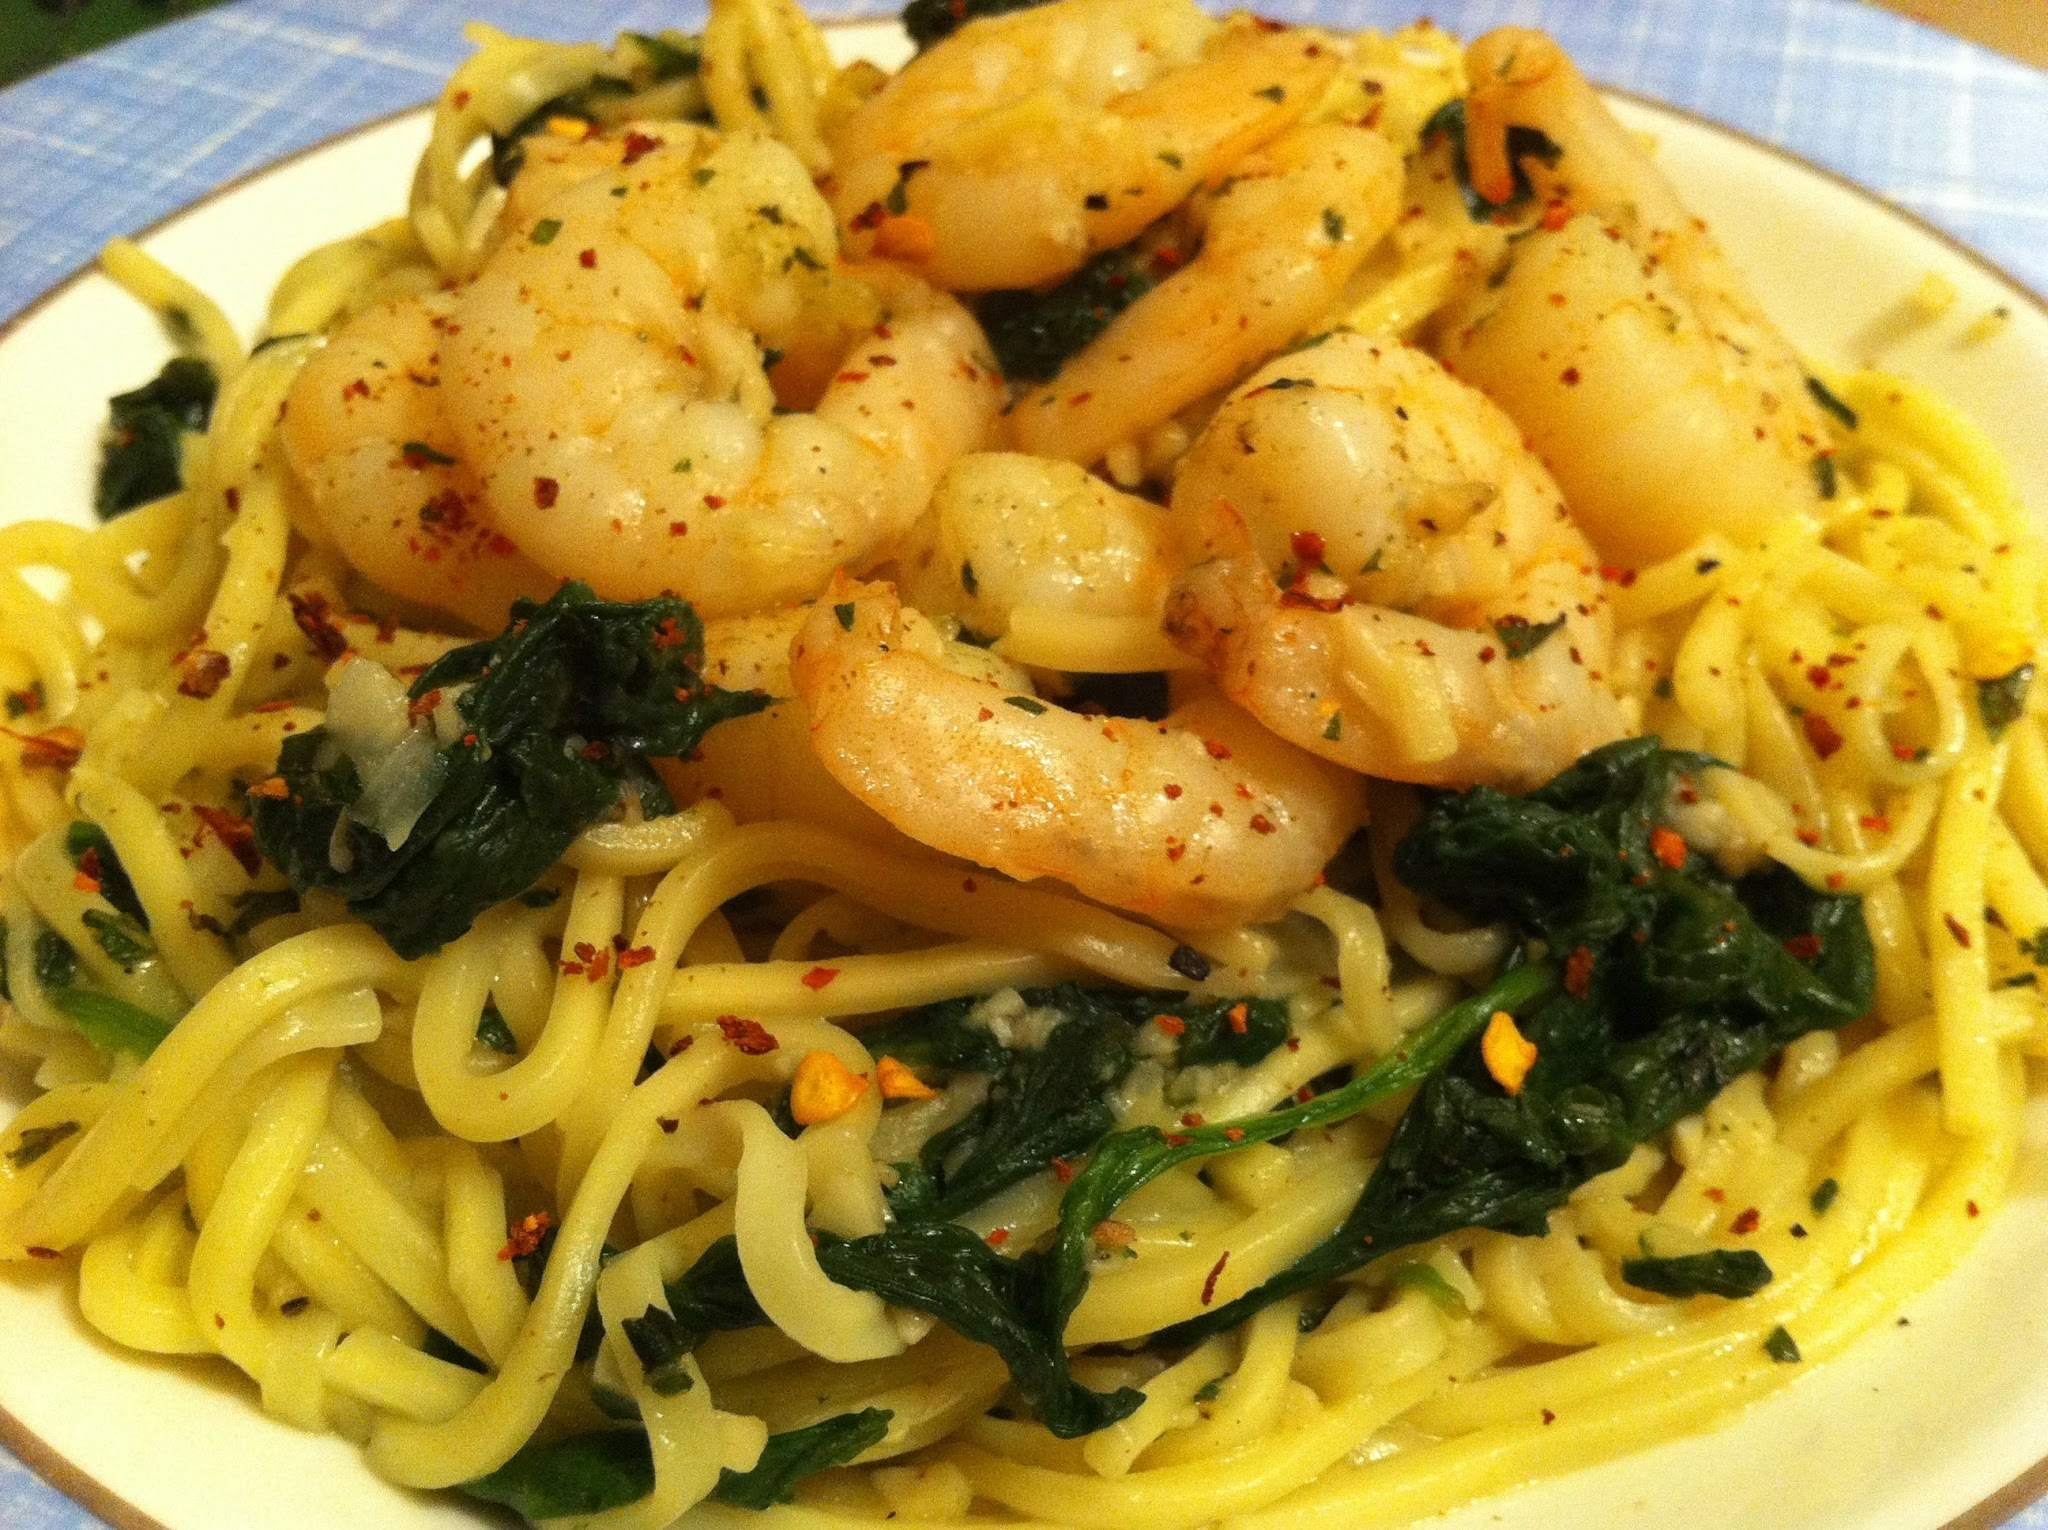 Spicy Garlic Shrimp with Spinach over Noodles